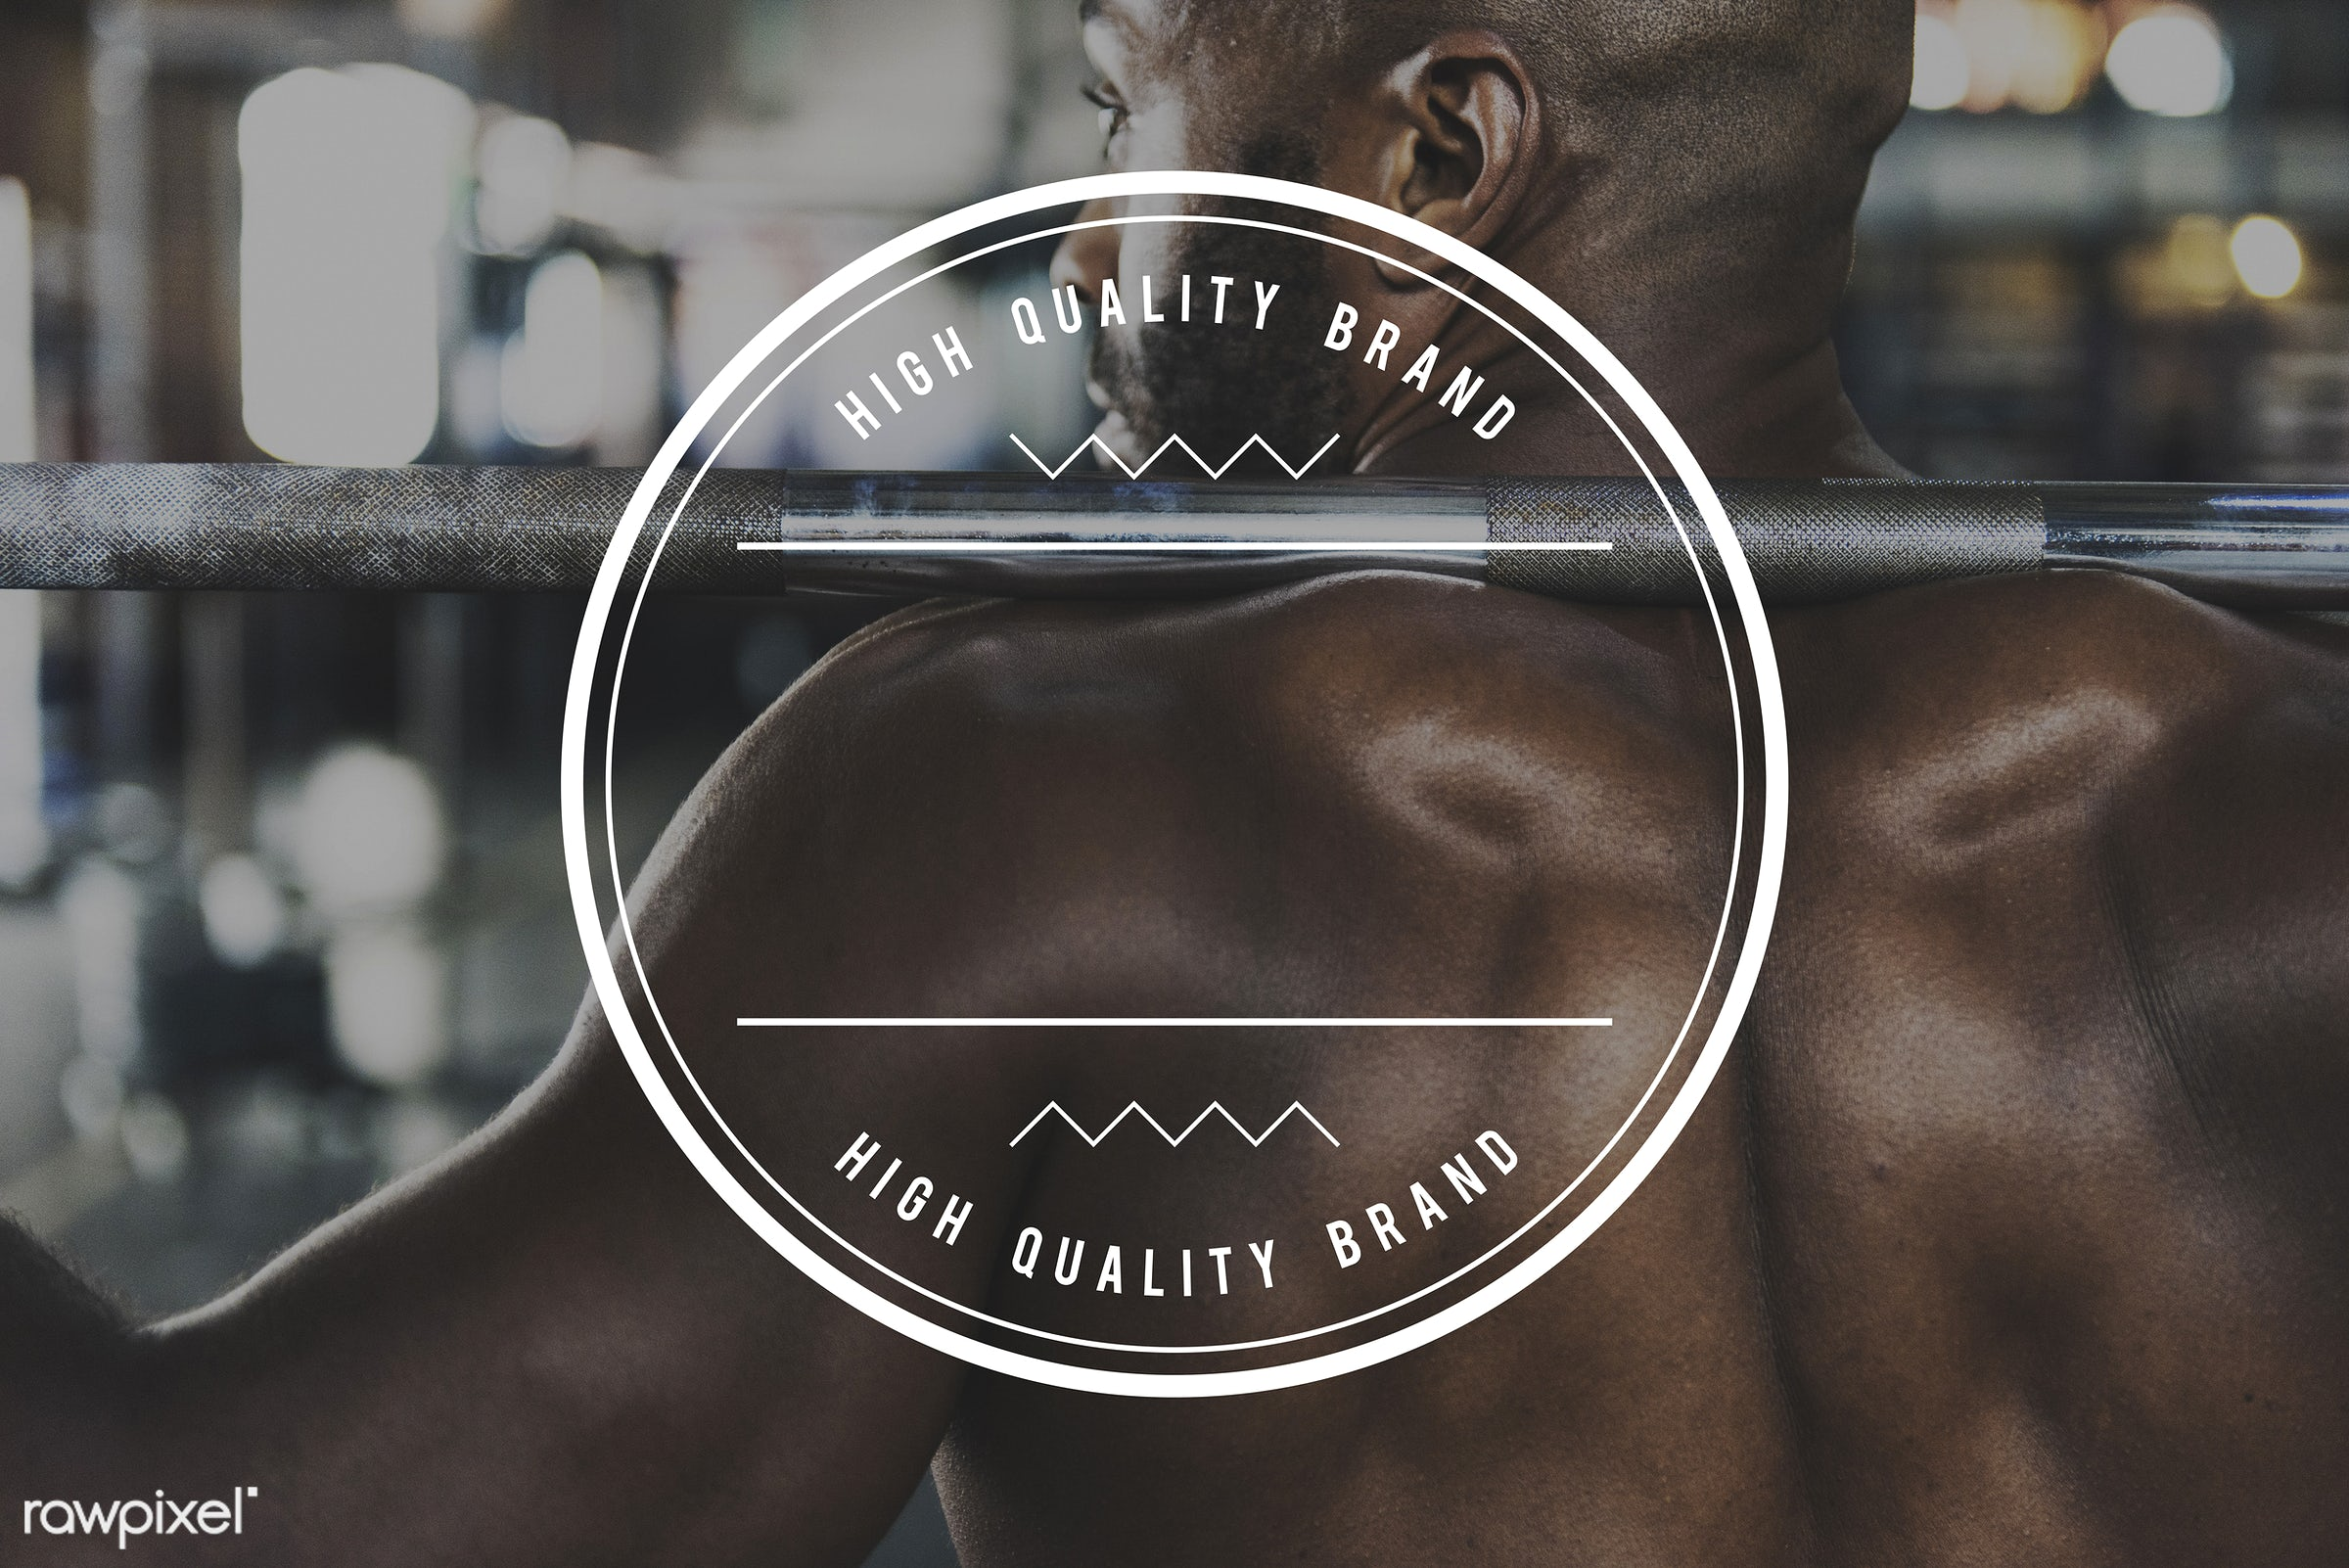 brand, advertisement, african descent, badge, banner, barbell, black, black people, blank, branding, business, commercial,...